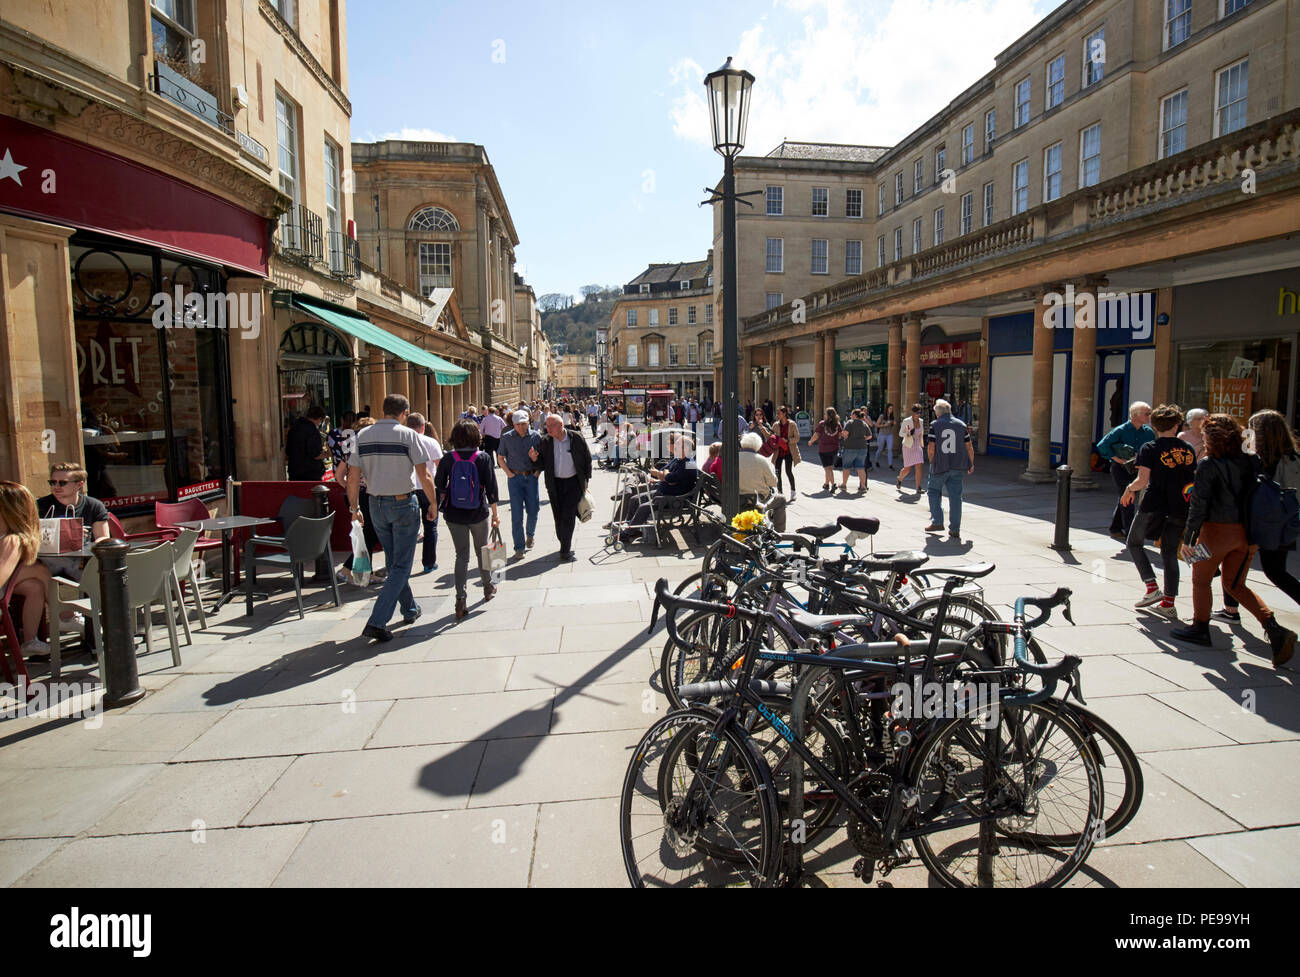 bike park on busy stall street shopping street in the city centre of Bath England UK - Stock Image